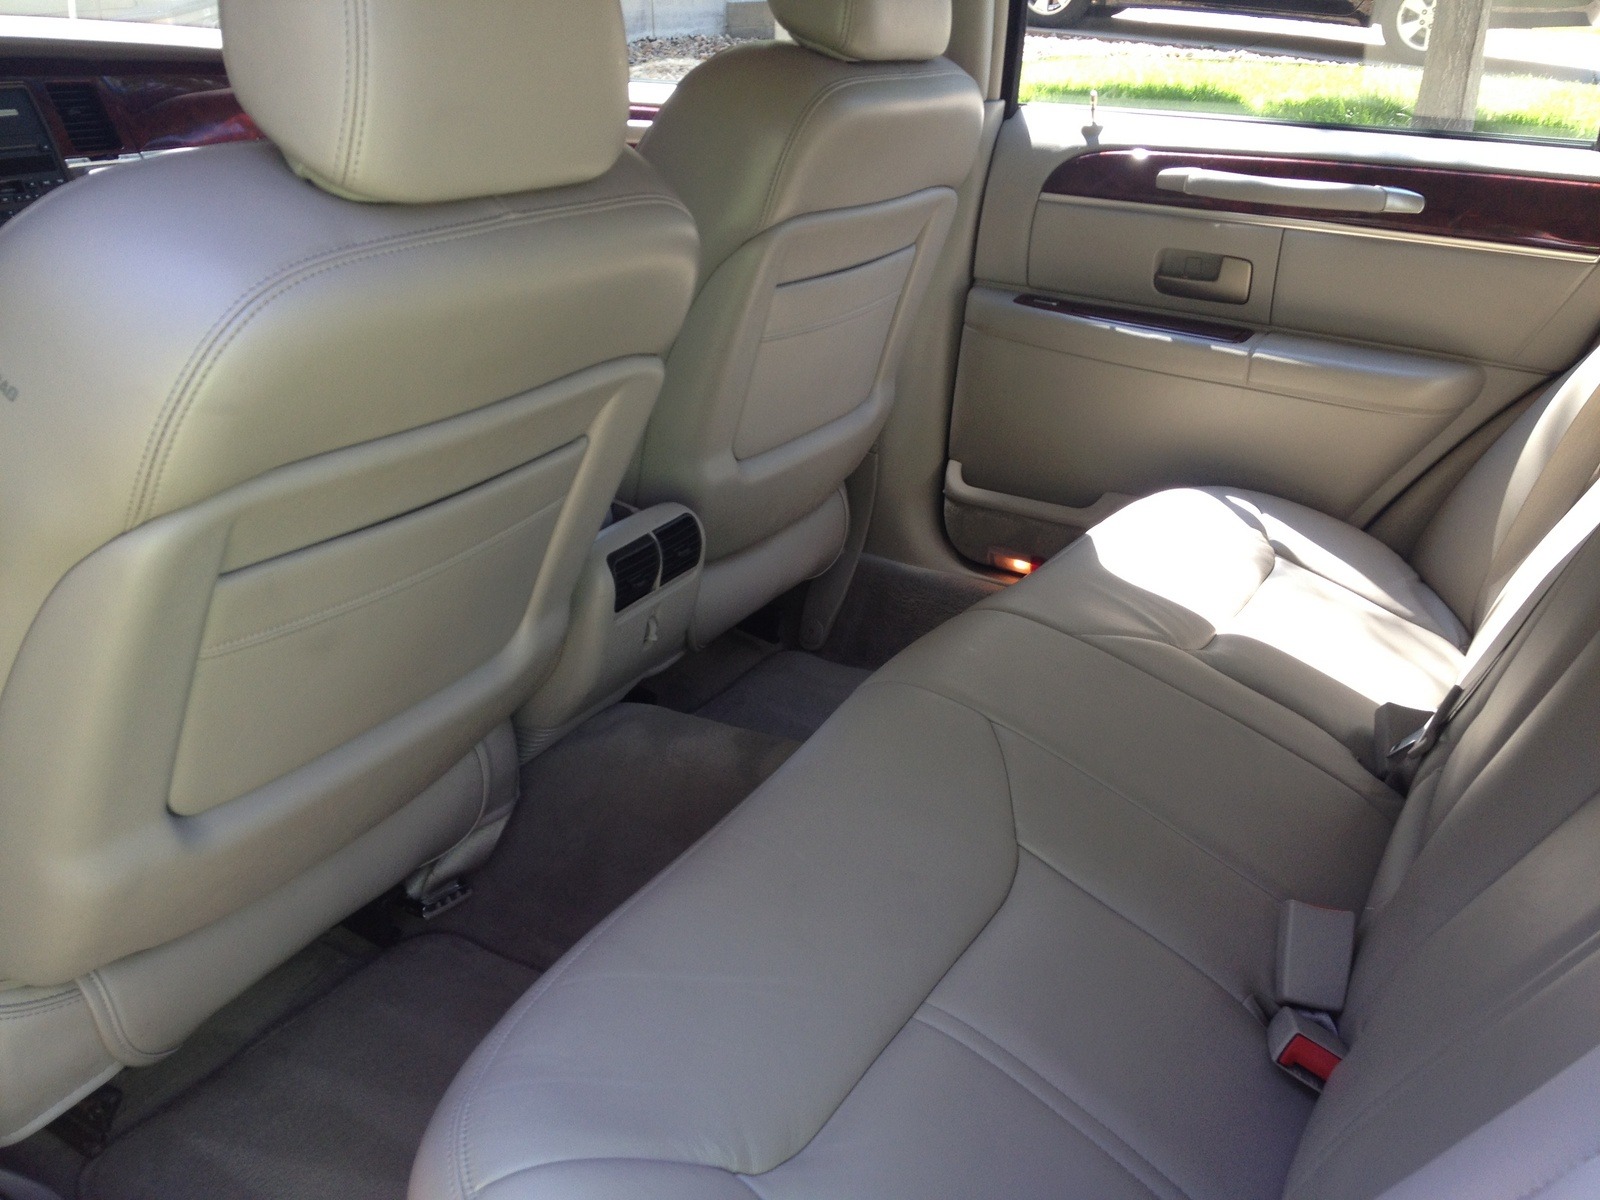 2003 lincoln town car interior pictures cargurus. Black Bedroom Furniture Sets. Home Design Ideas